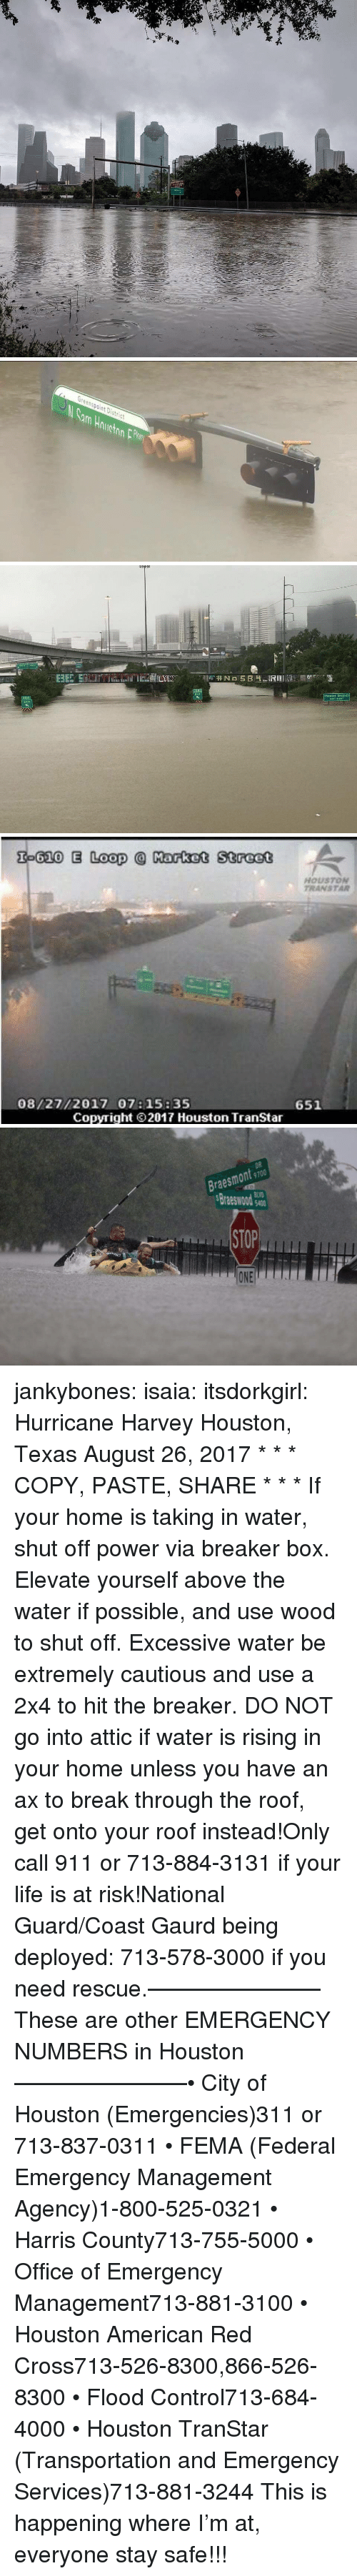 Hurricane Harvey: Greenspoint District   Theater District   620 E Loop Market Street  HOUSTON  TRANSTAR  08/27/2017 07:15:35  651  Copyright ⓒ 2017 Houston TranStar   Braesmont 9700  Braeswod  STOP  ONE jankybones: isaia:  itsdorkgirl:  Hurricane Harvey Houston, Texas  August 26, 2017  * * * COPY, PASTE, SHARE * * * If your home is taking in water, shut off power via breaker box. Elevate yourself above the water if possible, and use wood to shut off. Excessive water be extremely cautious and use a 2x4 to hit the breaker. DO NOT go into attic if water is rising in your home unless you have an ax to break through the roof, get onto your roof instead!Only call 911 or 713-884-3131 if your life is at risk!National Guard/Coast Gaurd being deployed: 713-578-3000 if you need rescue.———————–These are other EMERGENCY NUMBERS in Houston———————–• City of Houston (Emergencies)311 or 713-837-0311 • FEMA (Federal Emergency Management Agency)1-800-525-0321 • Harris County713-755-5000 • Office of Emergency Management713-881-3100 • Houston American Red Cross713-526-8300,866-526-8300 • Flood Control713-684-4000 • Houston TranStar (Transportation and Emergency Services)713-881-3244   This is happening where I'm at, everyone stay safe!!!